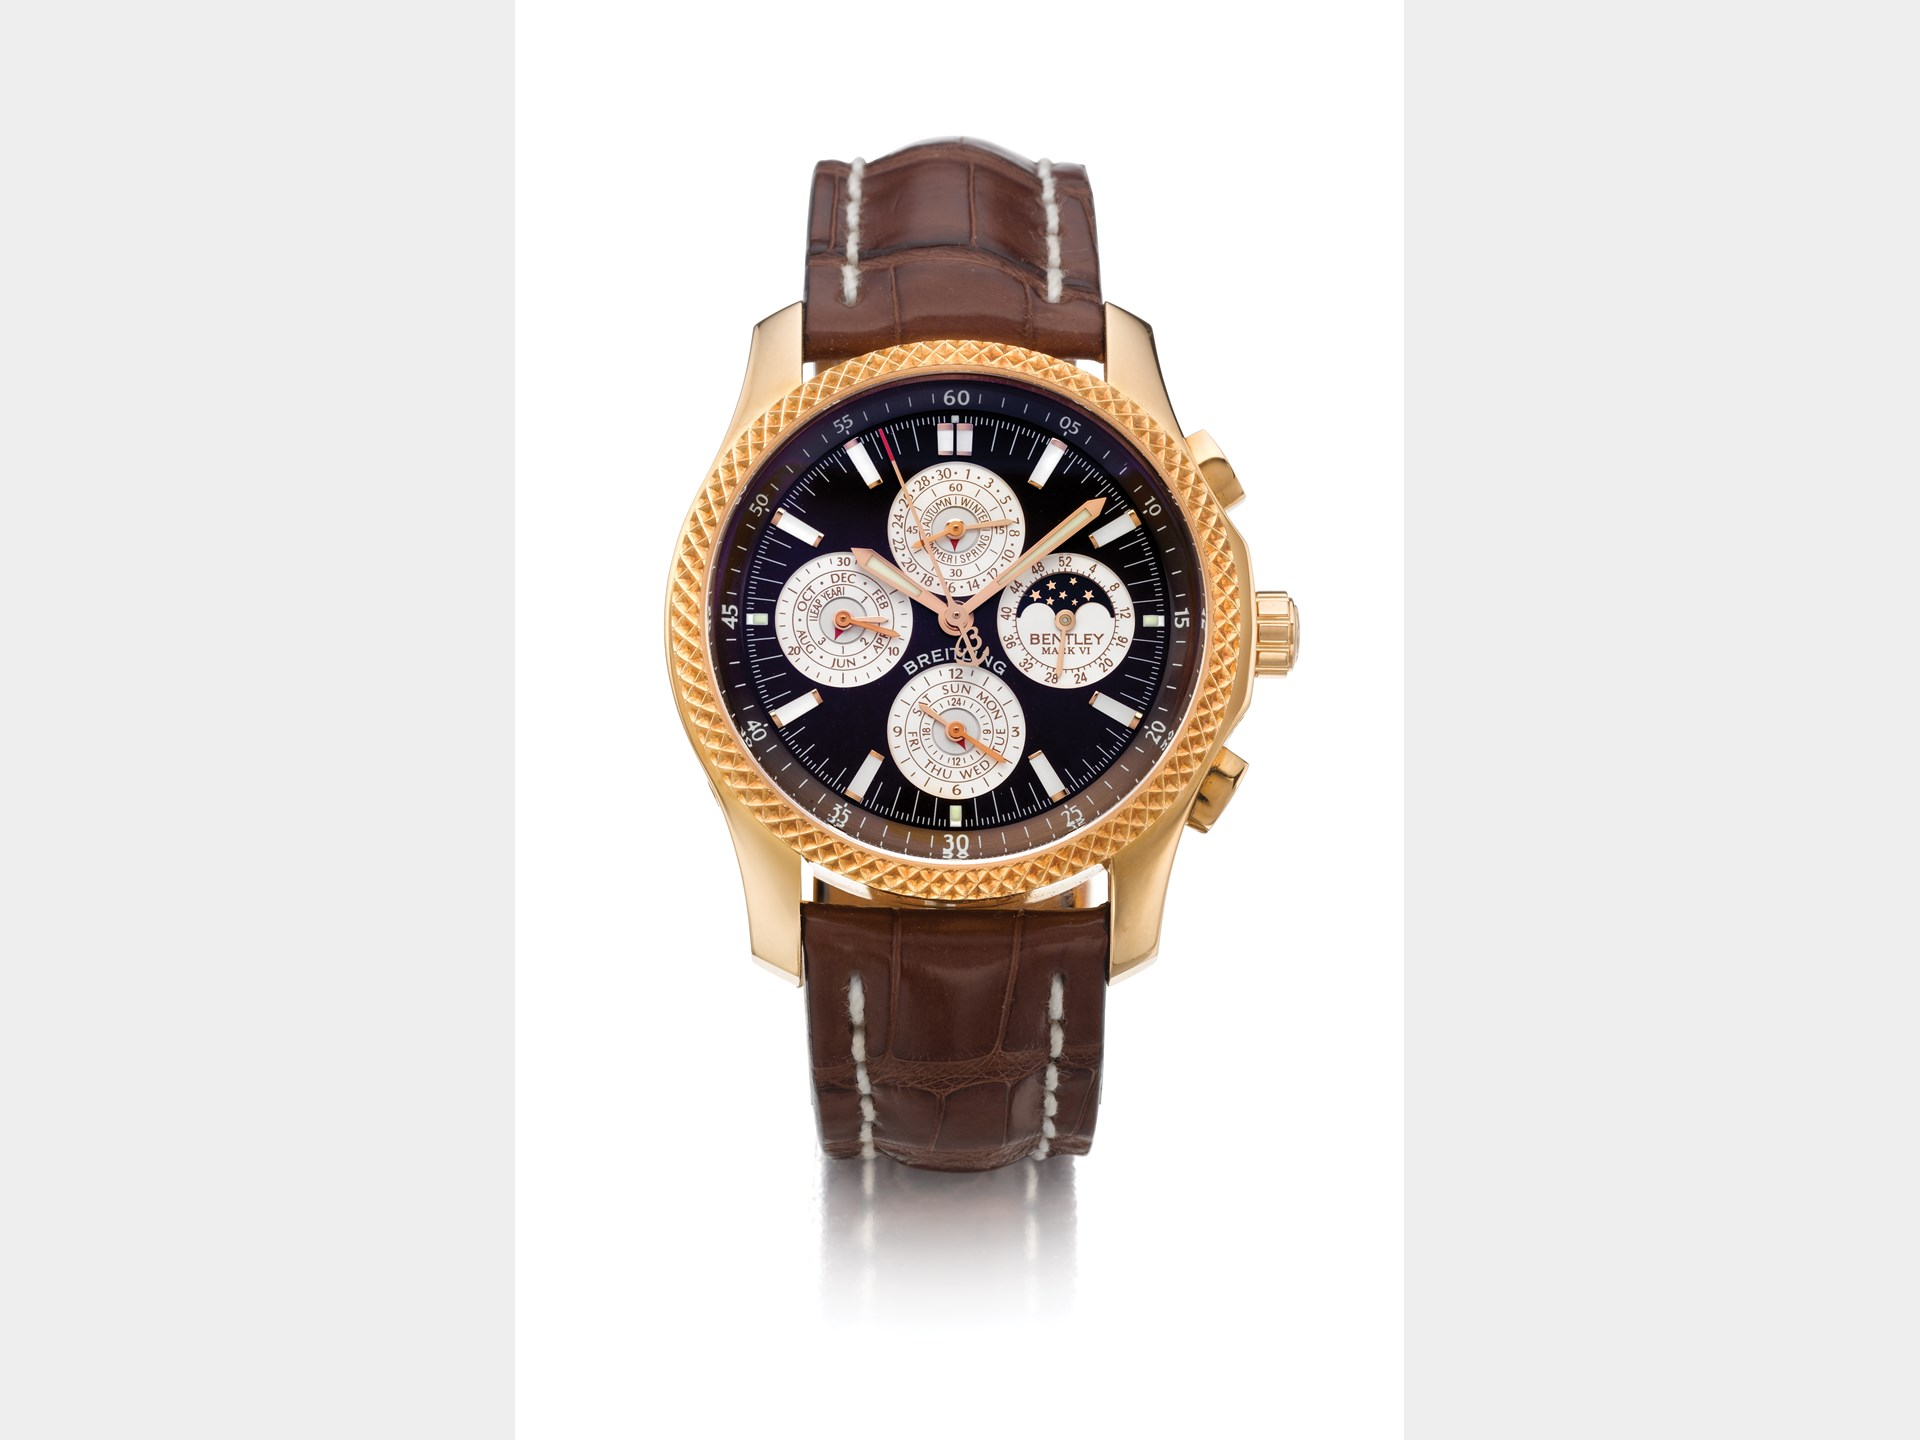 Breitling, Limited Edition Pink Gold Automatic Perpetual Calendar Chronograph Wristwatch with Registers and Moon Phases